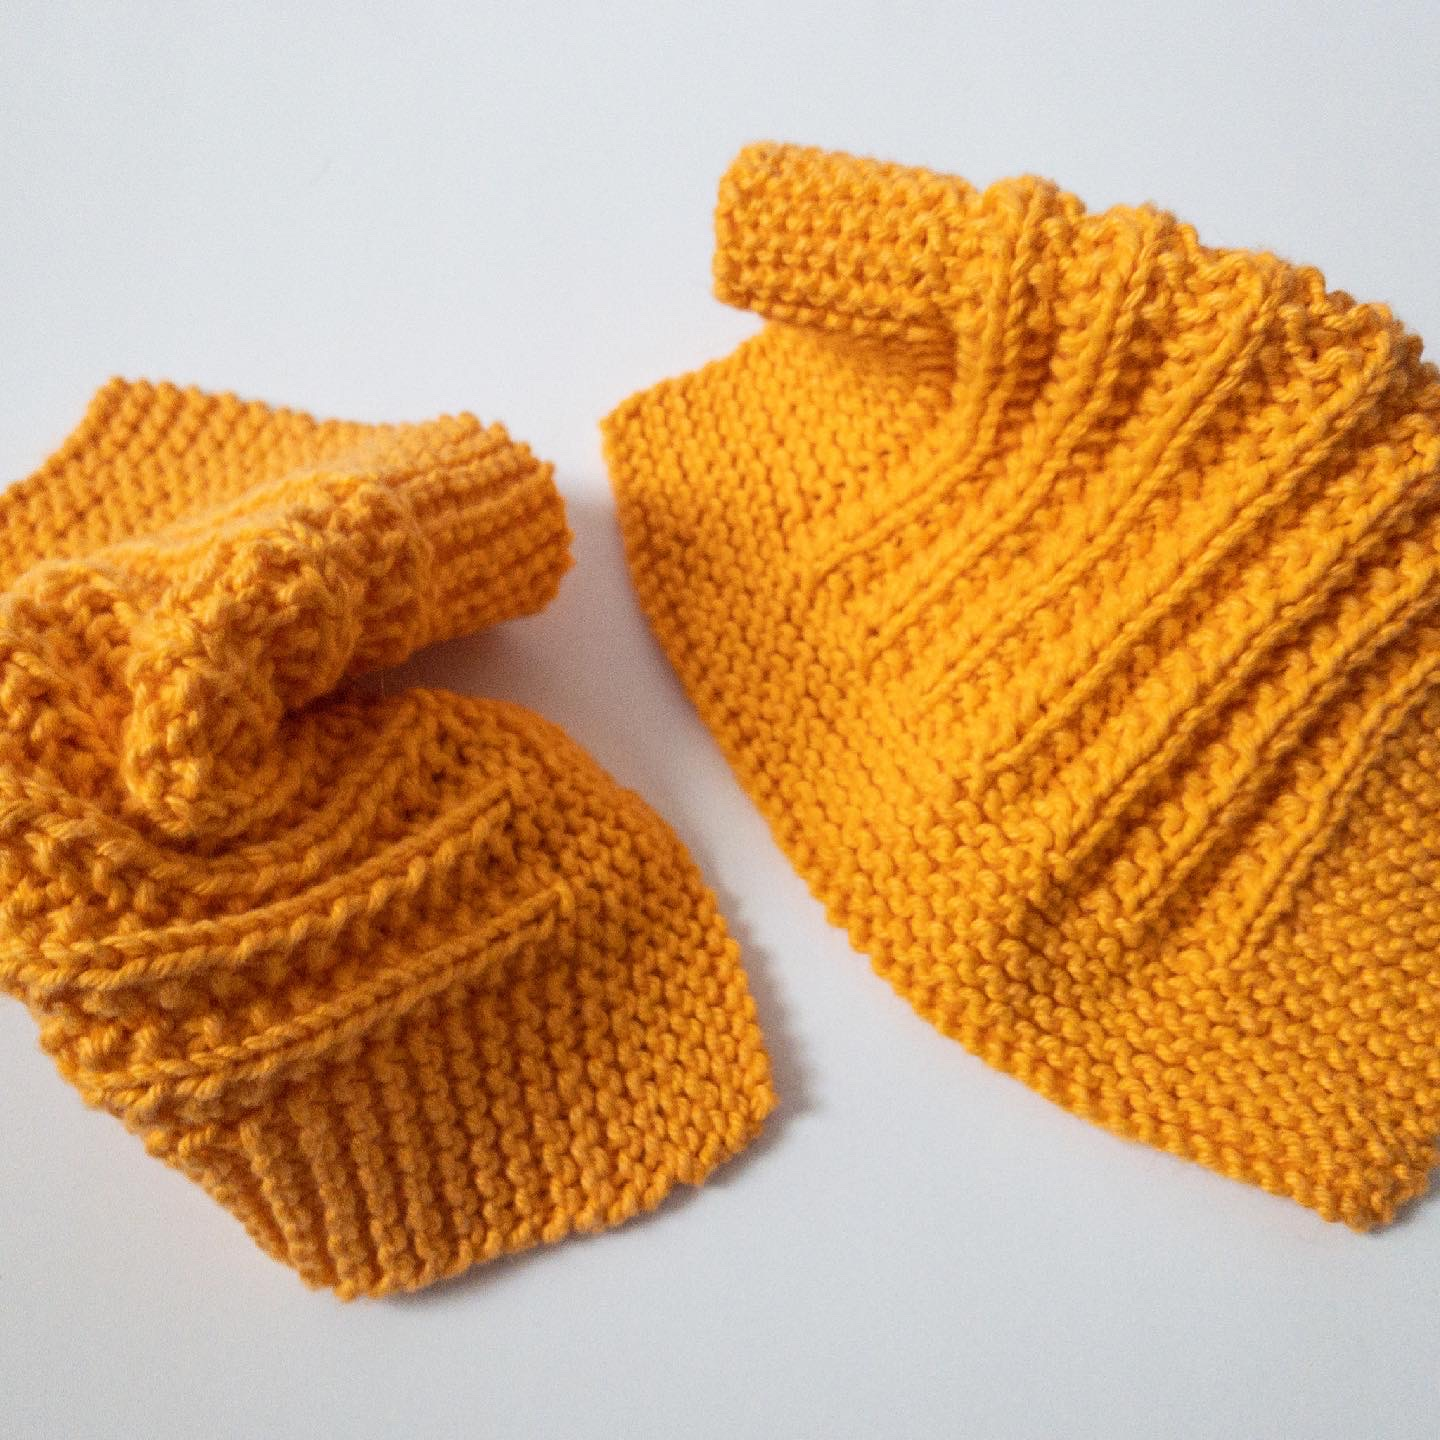 two square yellow-orange knitted cotton dishcloths